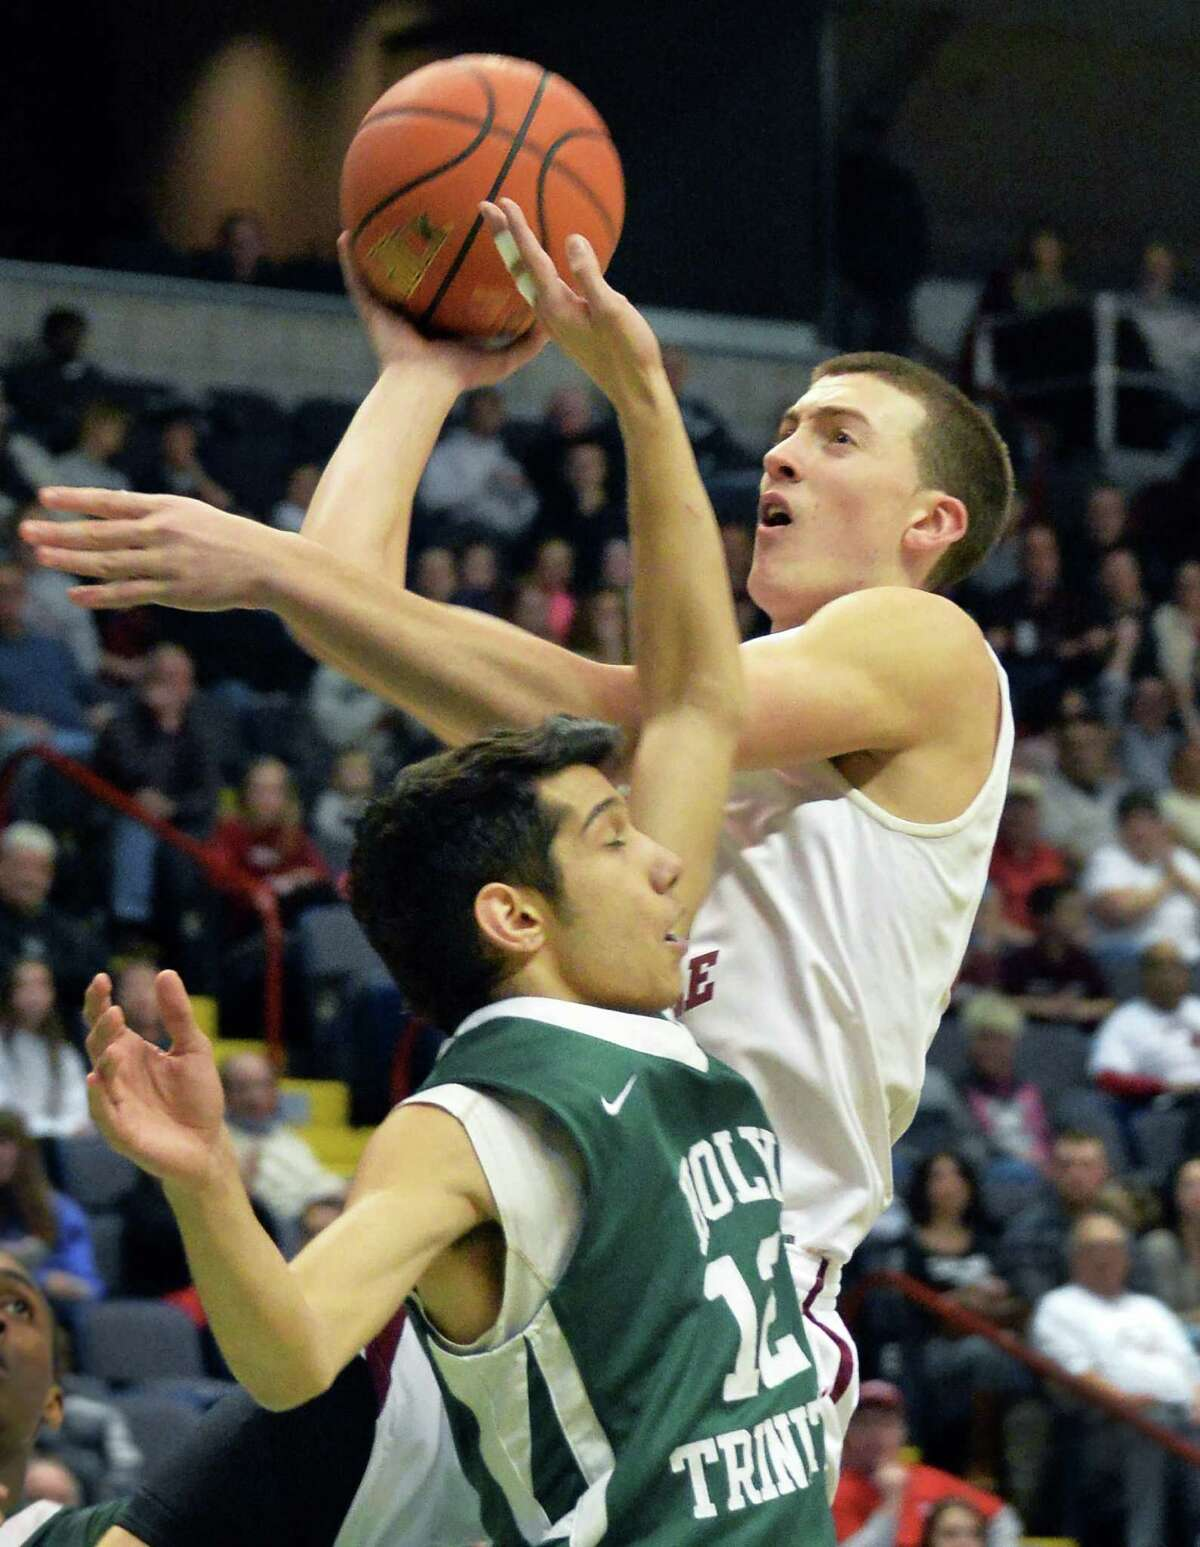 Scotia's #24 Joe Cremo, top, battles Holy Trinity's #12 Michael Farella under the basket during the Class A Federation boys' basketball final at the Times Union Center Saturday March 22, 2014, in Albany, NY. (John Carl D'Annibale / Times Union)